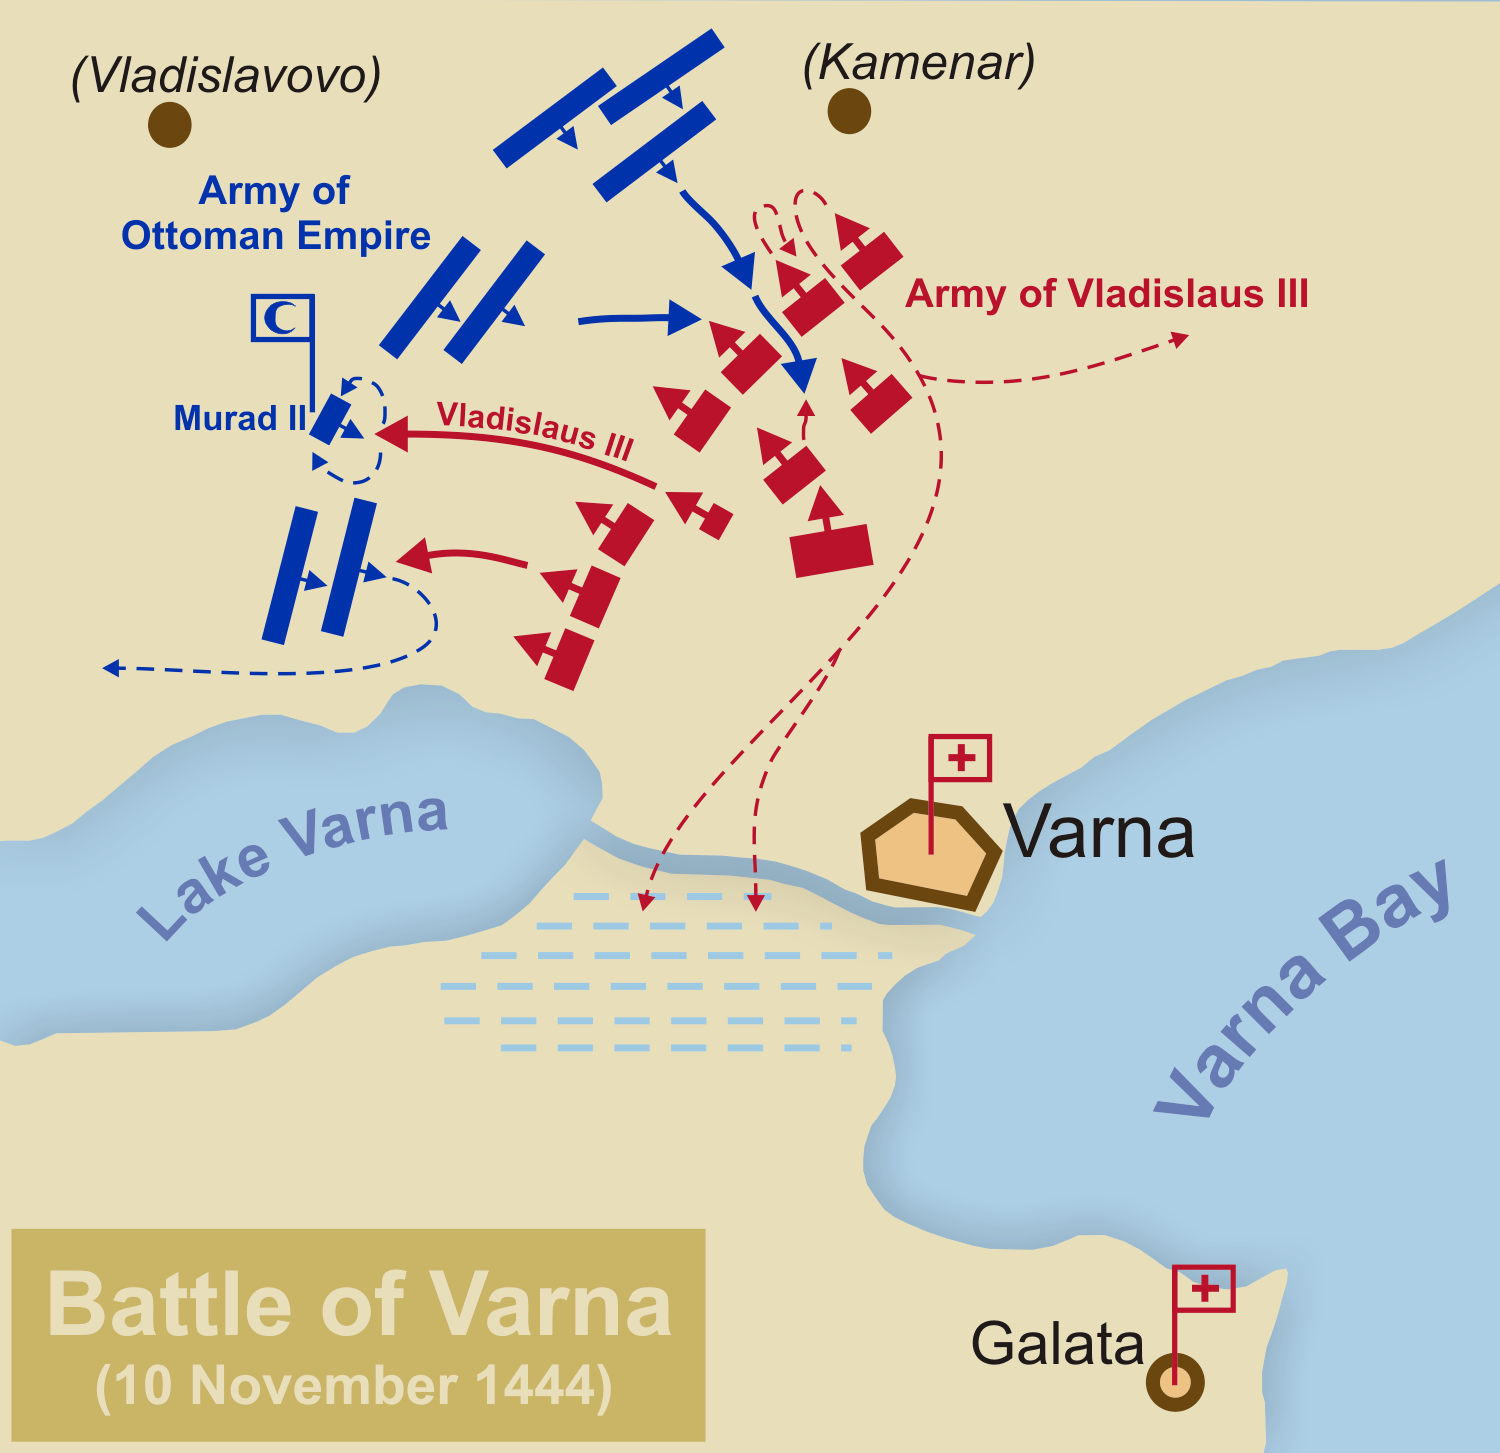 https://upload.wikimedia.org/wikipedia/commons/a/a4/Battle_of_Varna.png